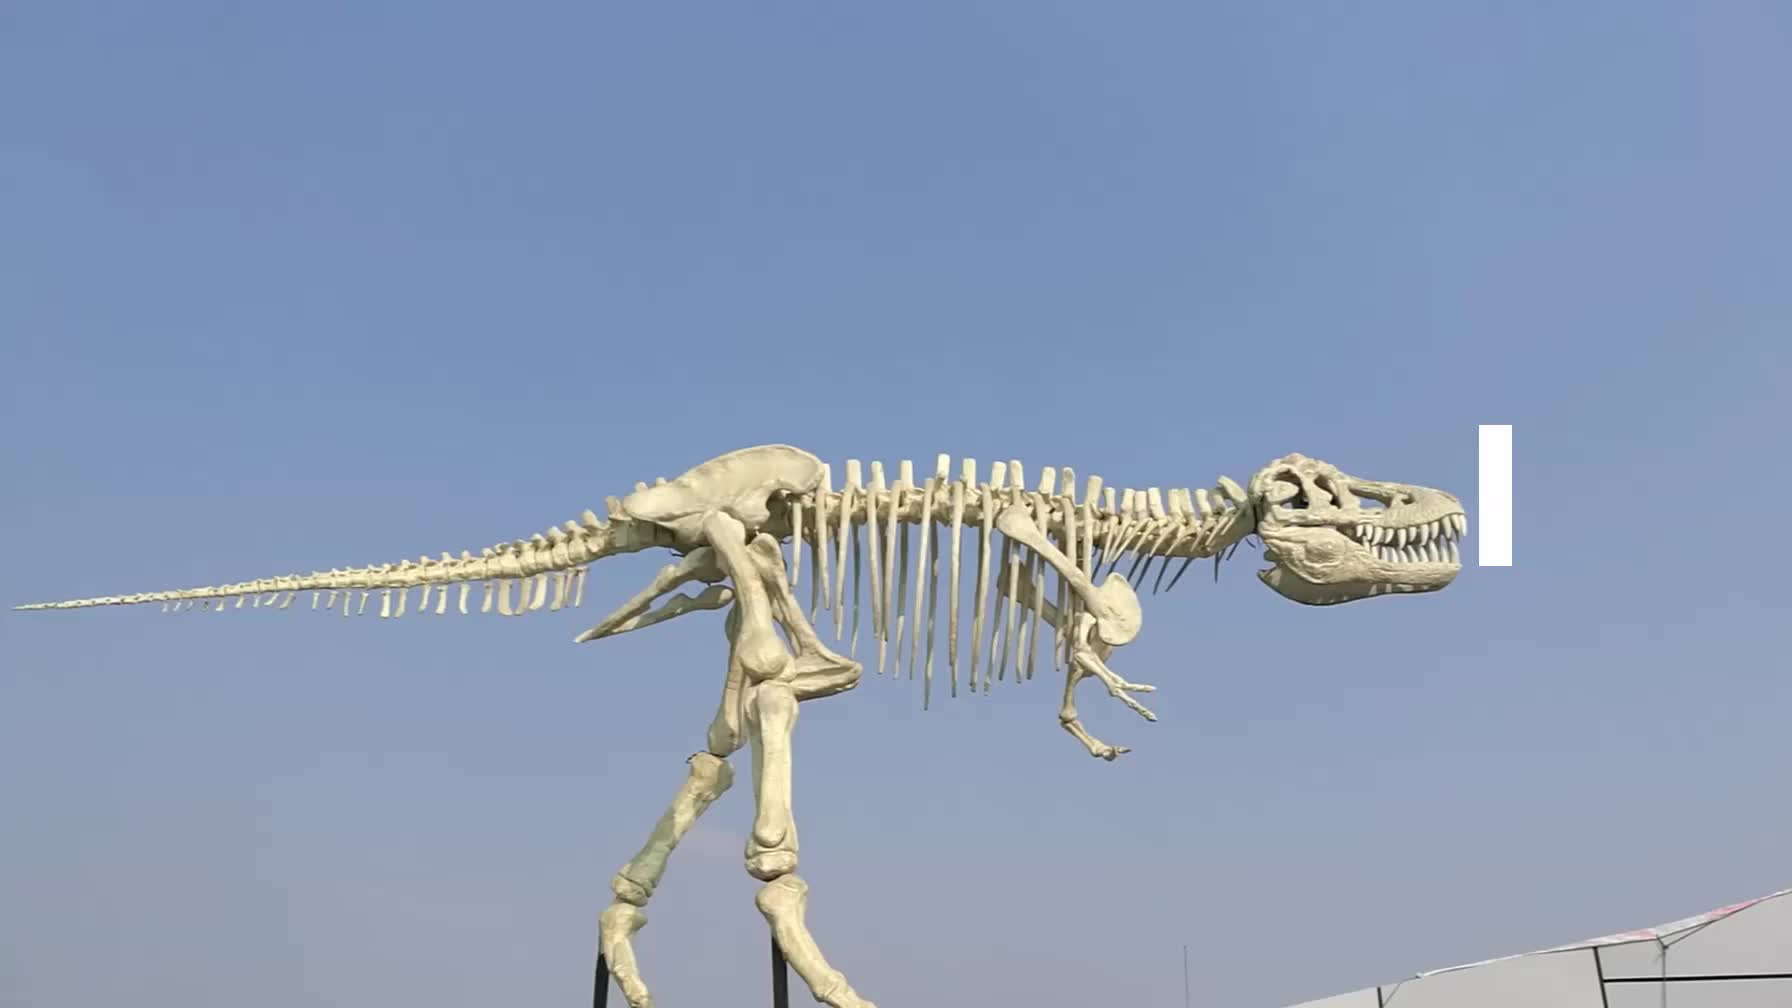 My-dino AJU26-3 Museum Fluorescent Artificial Silicon Dino Skeleton For Display